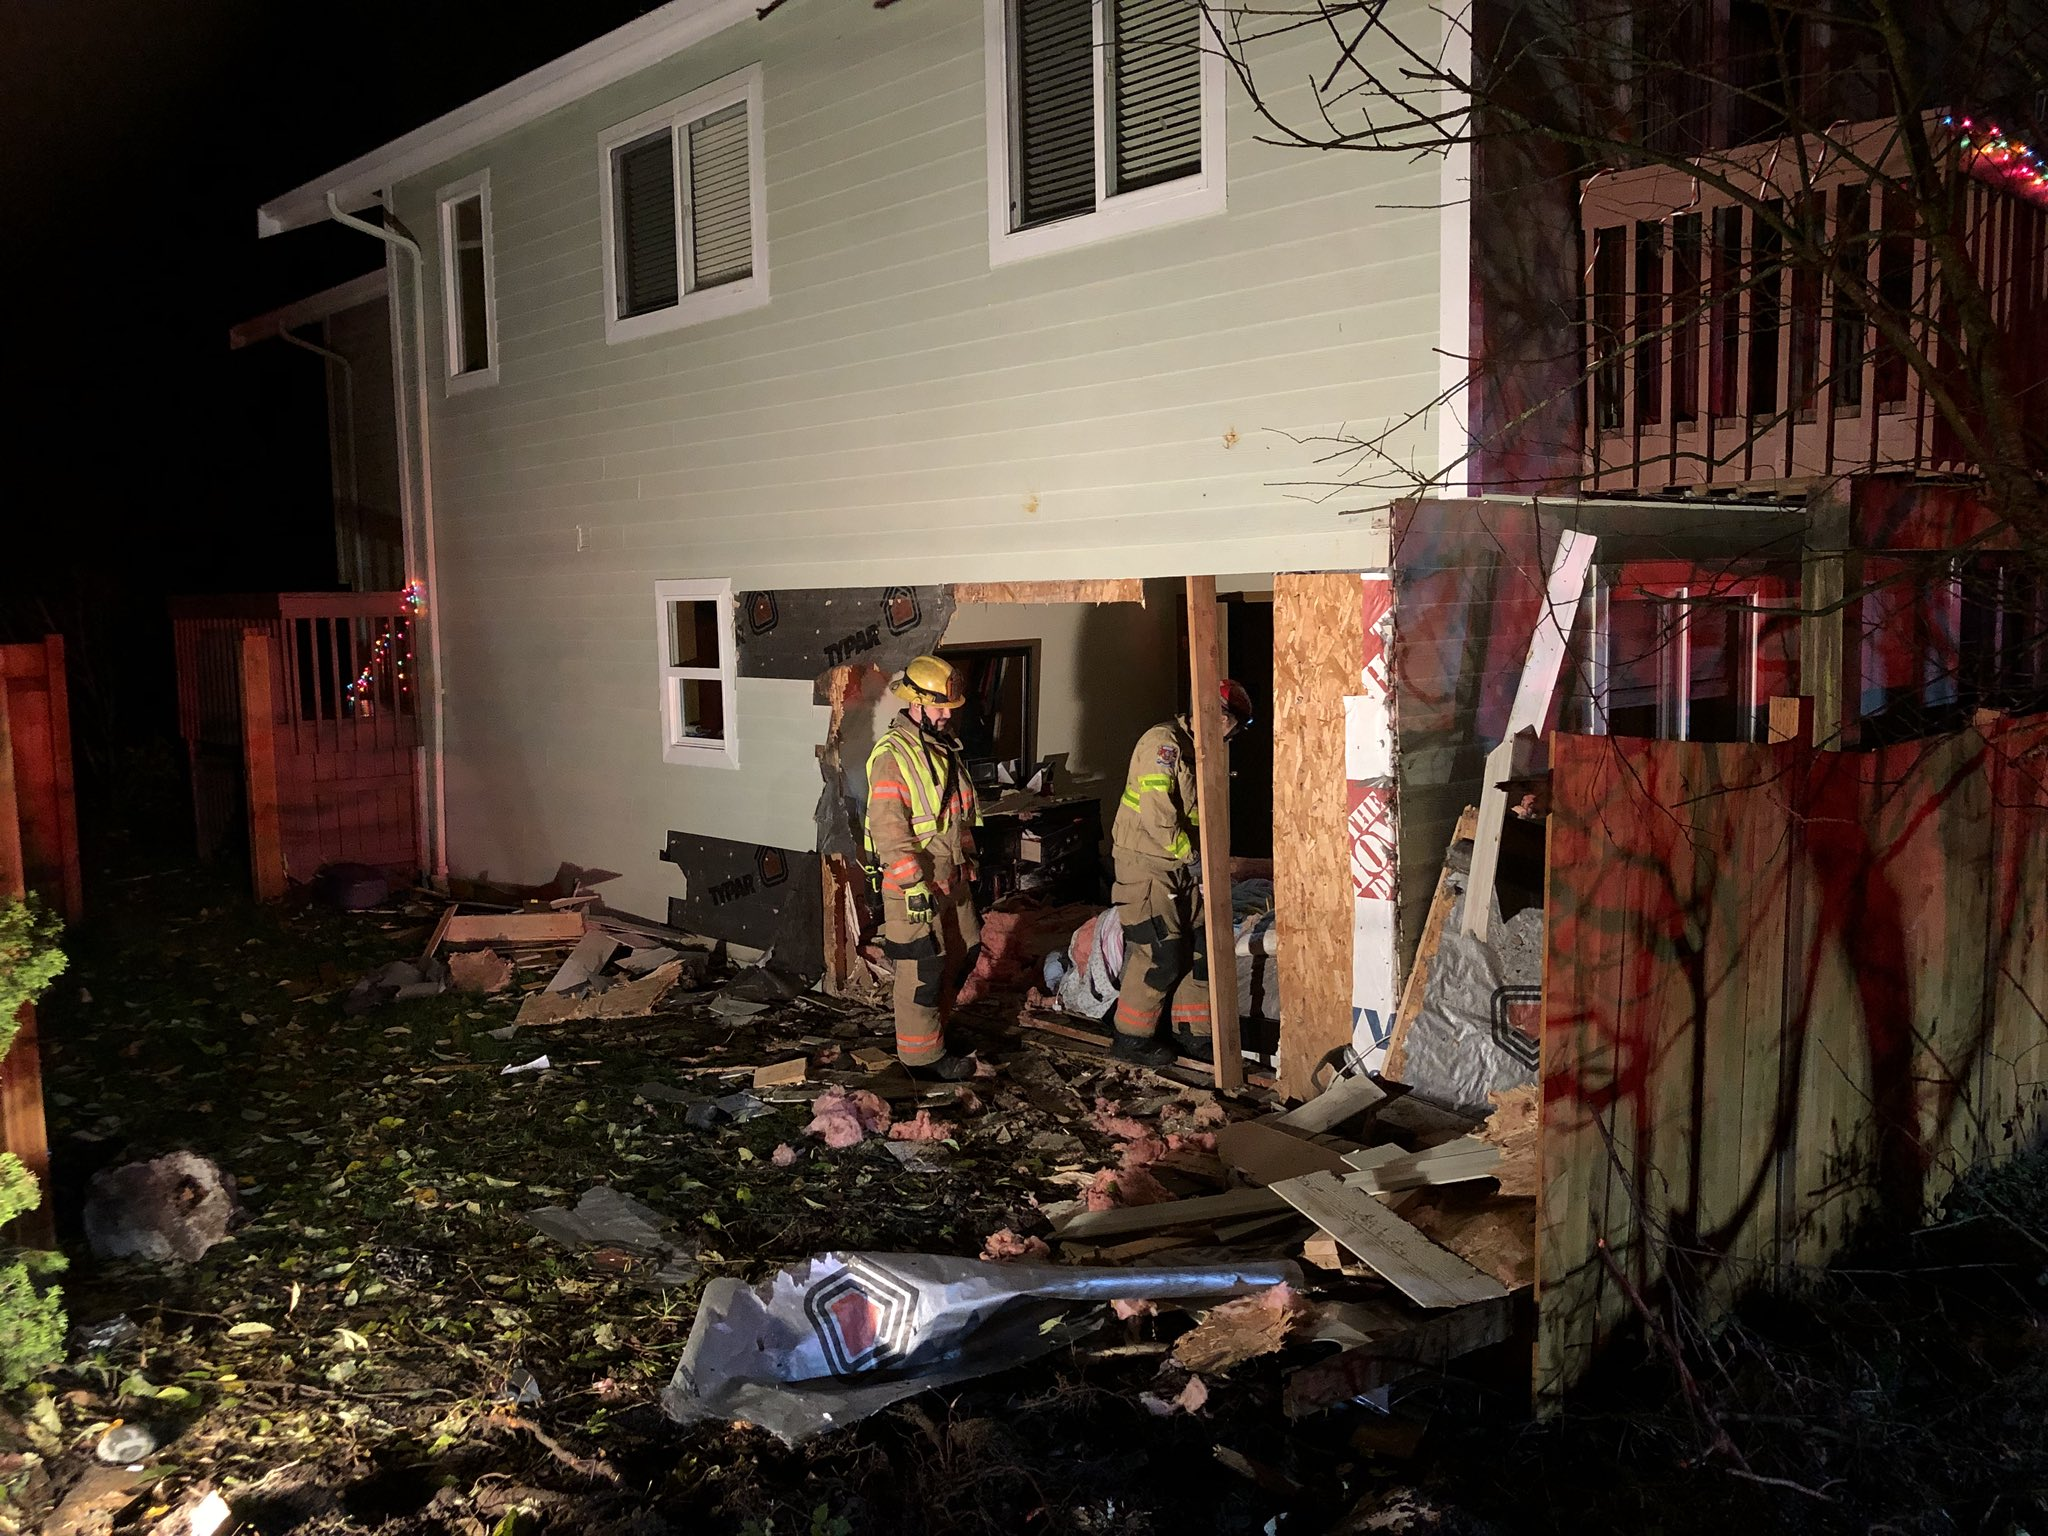 South King Fire and Rescue crews worked to patch up the house after a car drove through one of the walls early Friday morning. (Photo credit: South King Fire and Rescue)<p></p>